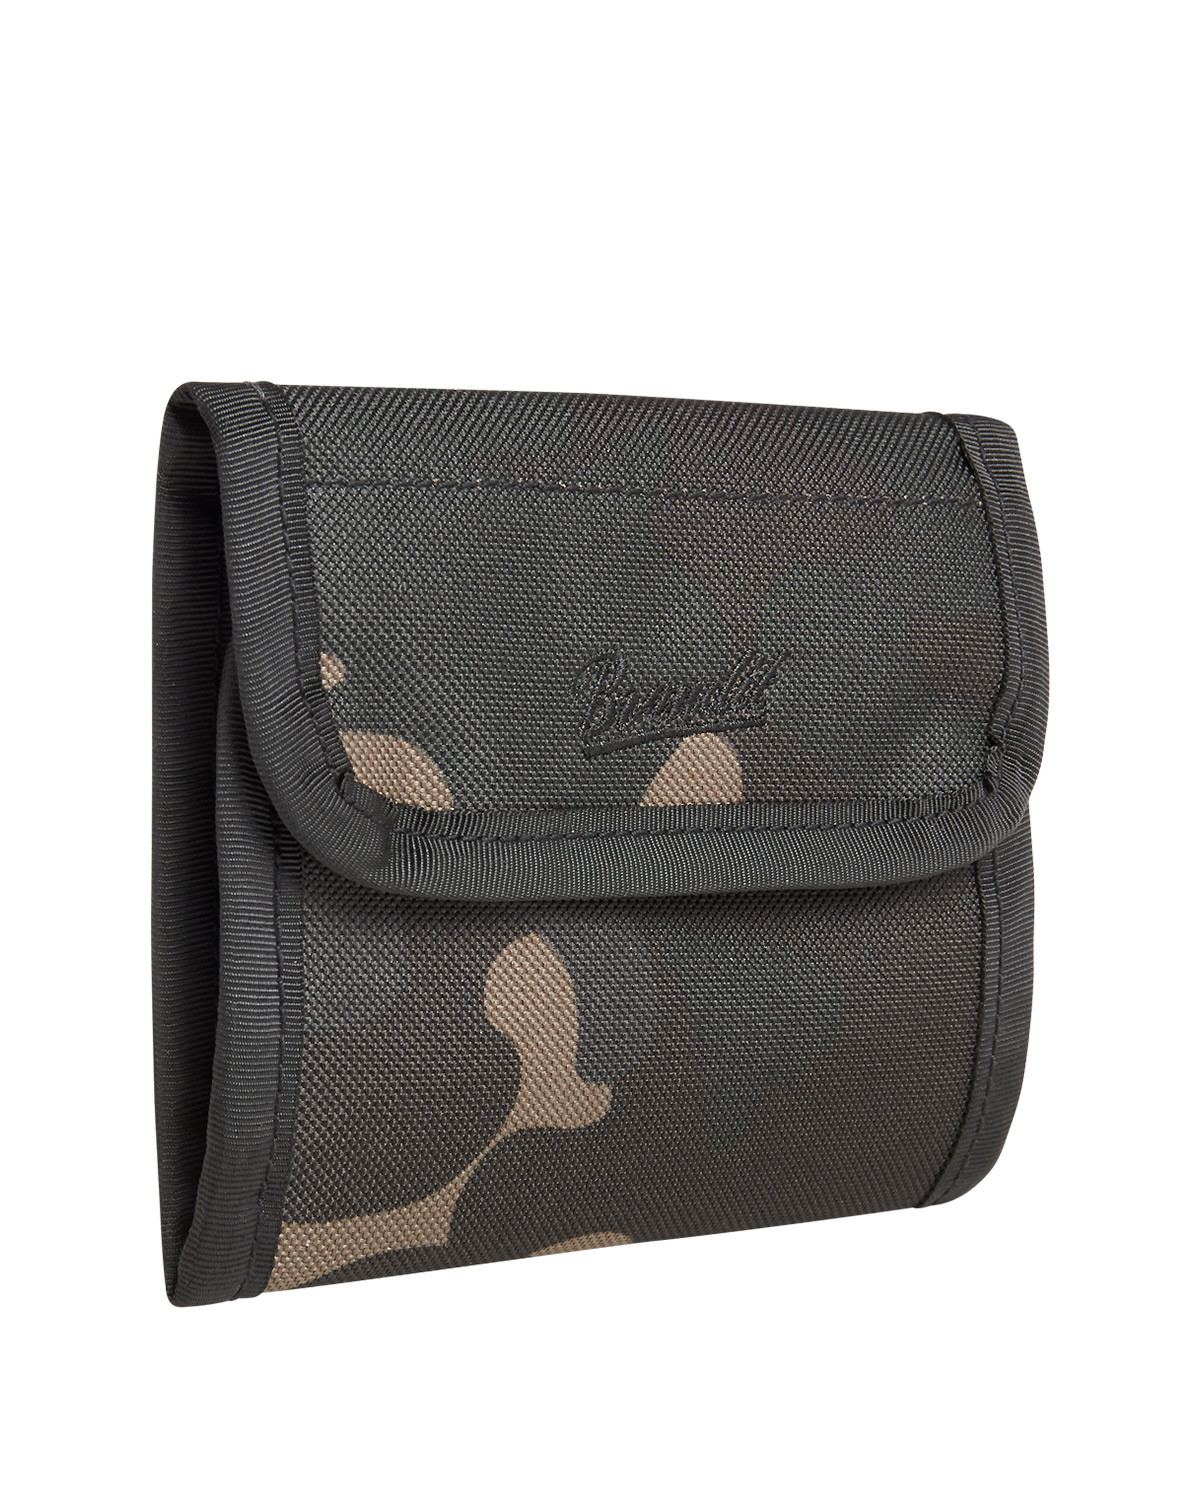 Image of   Brandit Wallet Five (Dark Camo, One Size)